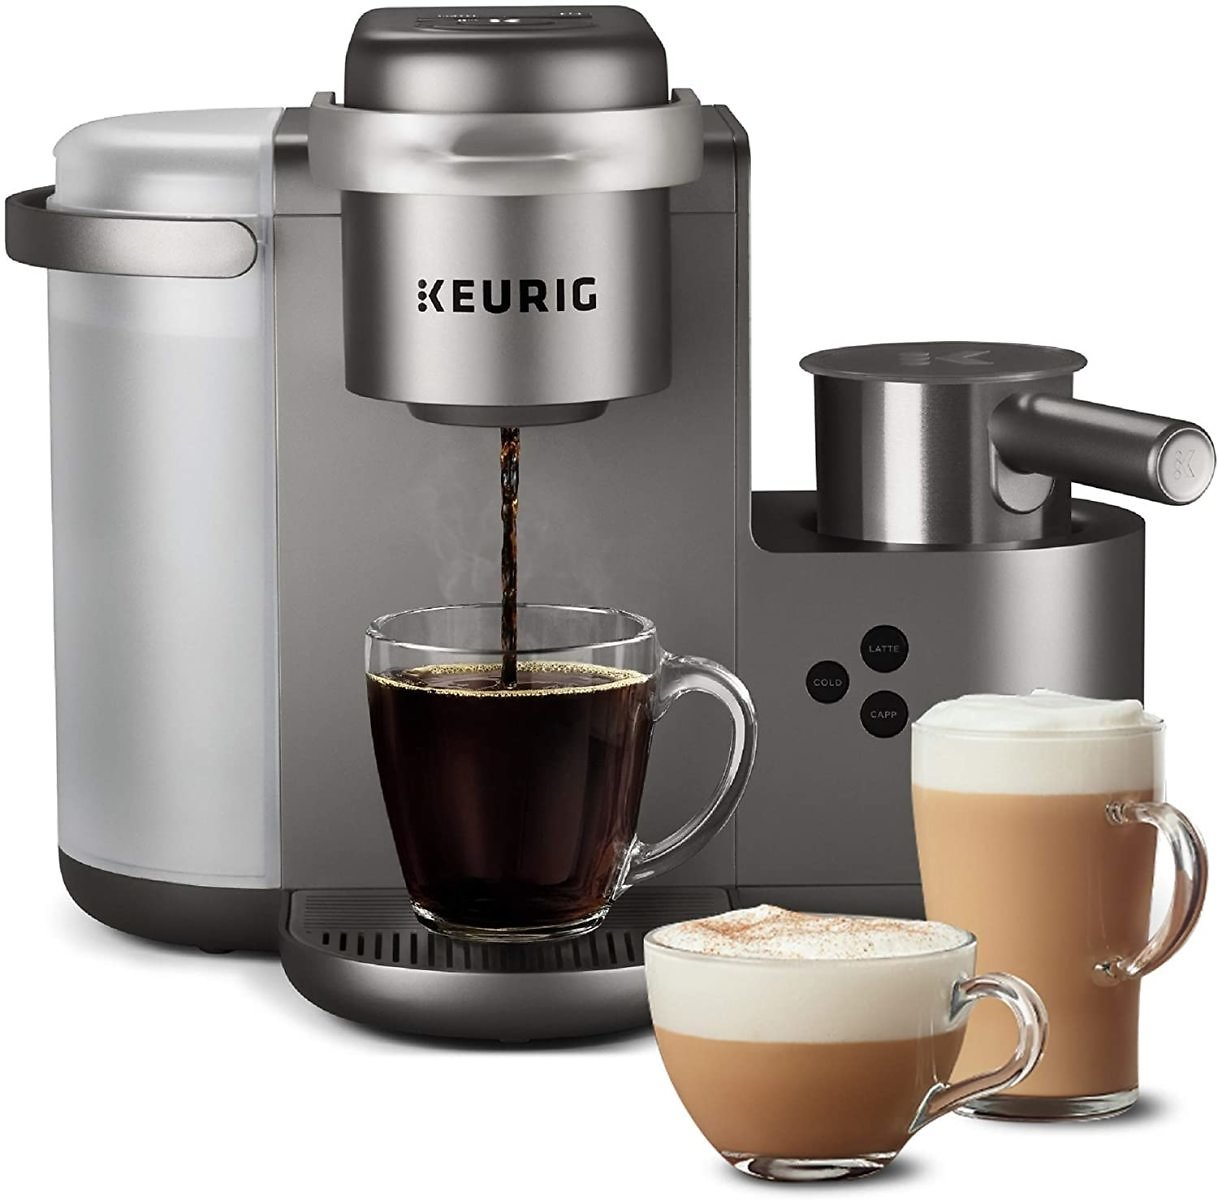 Keurig K-Cafe Special Edition Single Serve K-Cup Pod Coffee, Latte and Cappuccino Maker, Comes with Dishwasher Safe Milk Frother, Shot Capability, Nickel